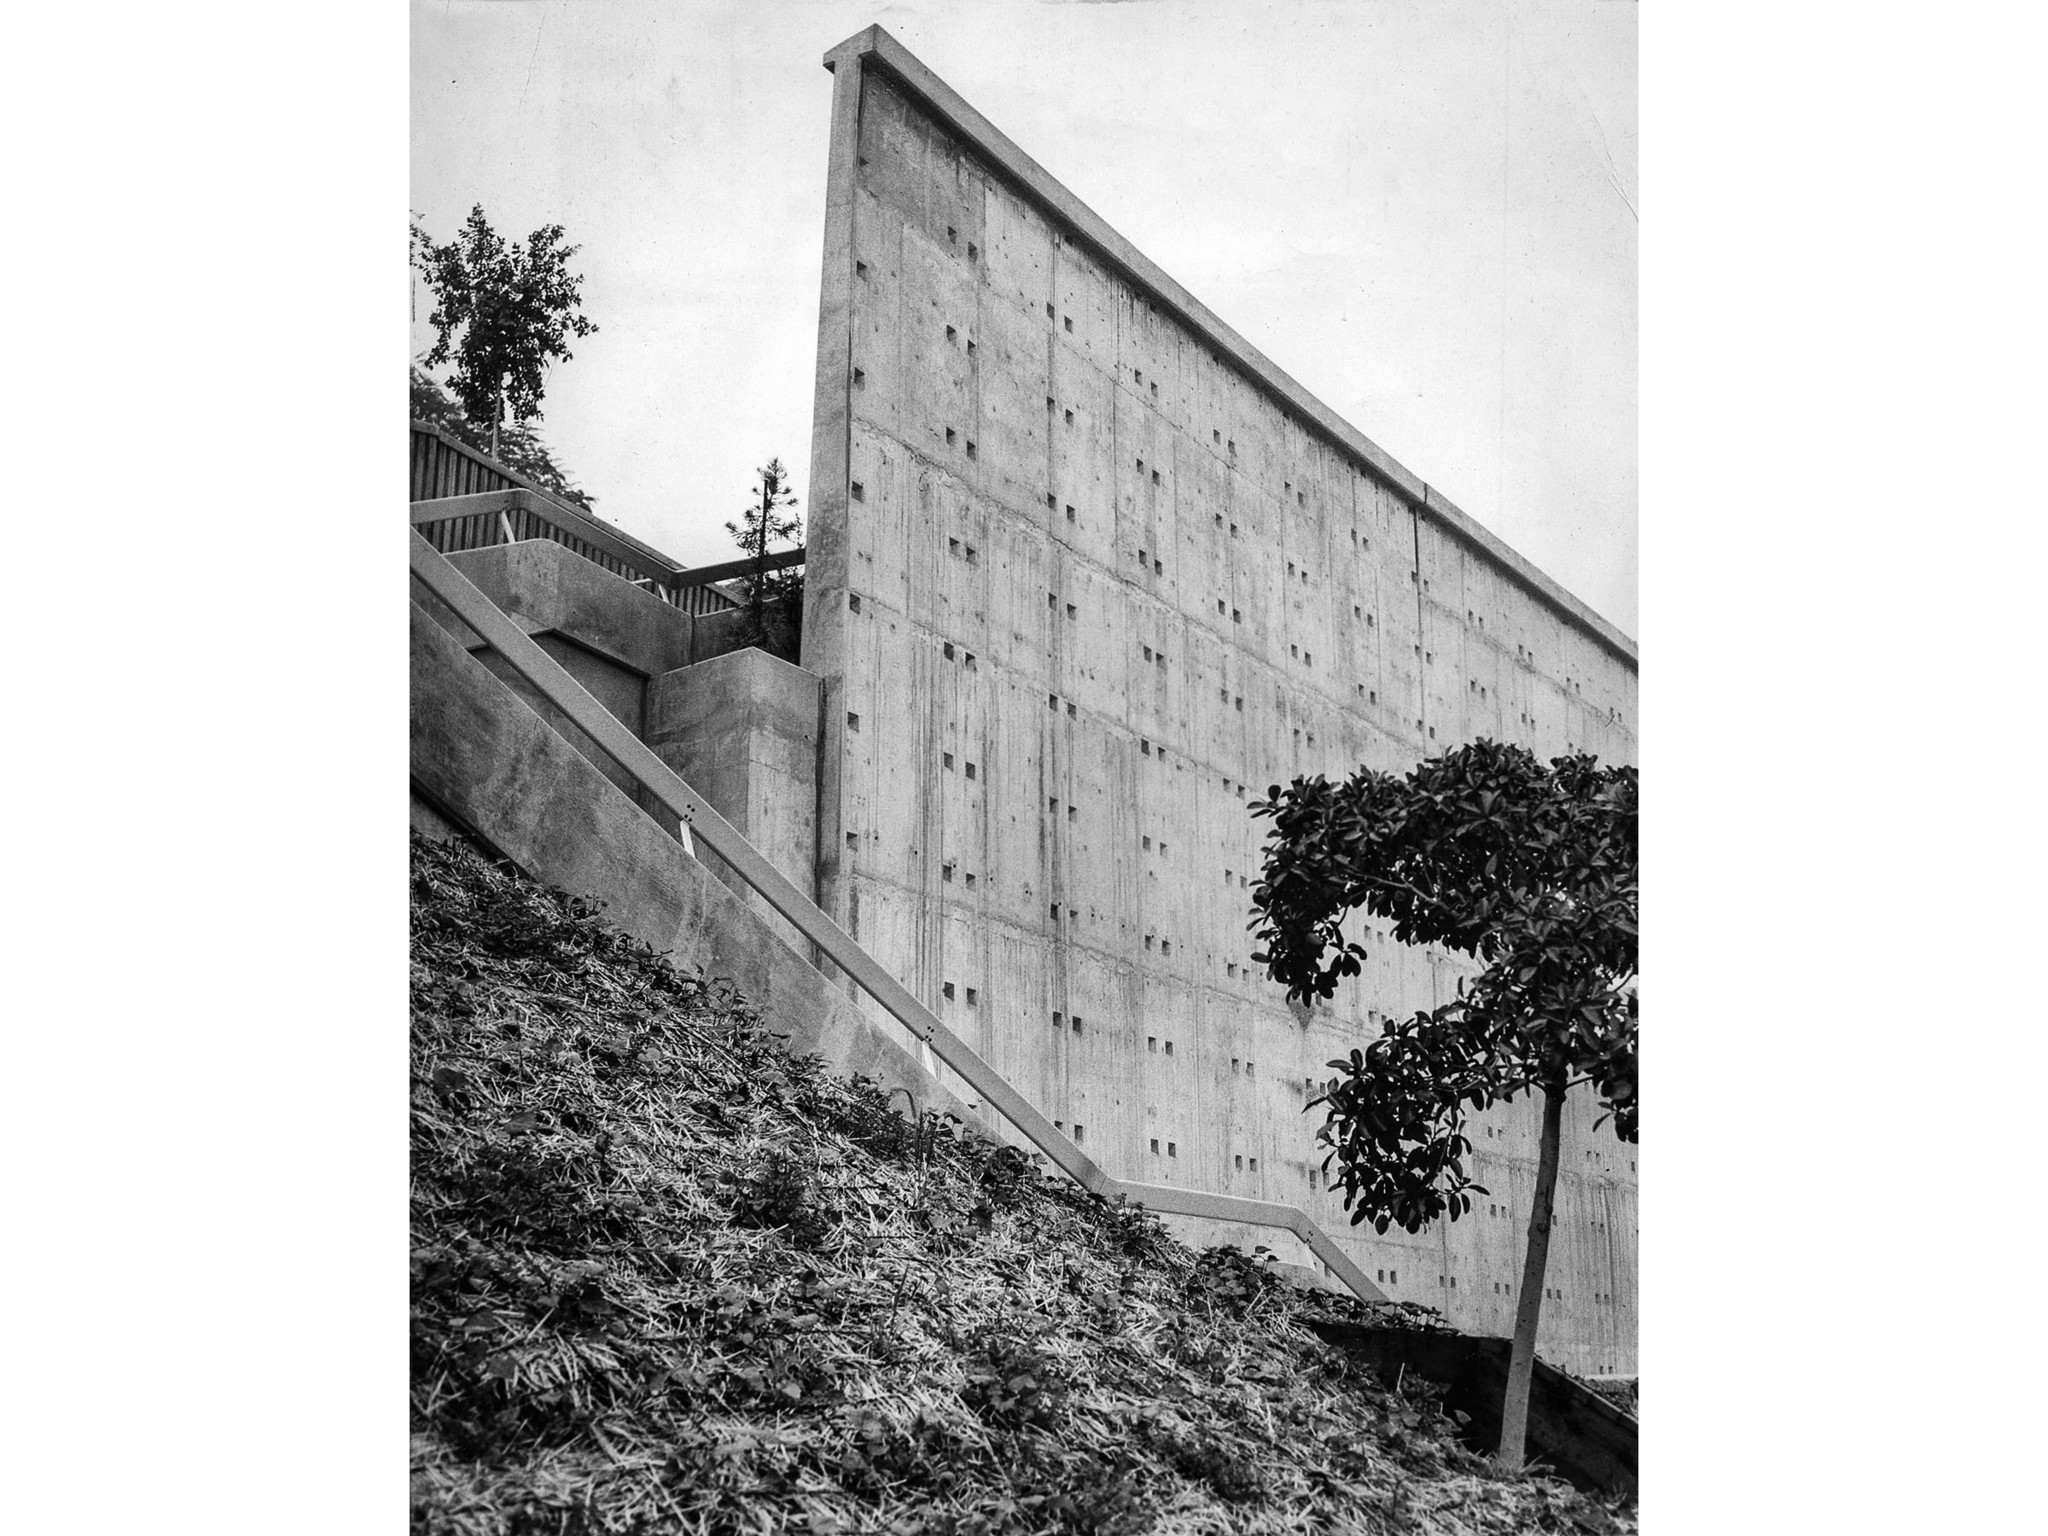 Dec. 16, 1955: Barren wall of Ft. Moore Pioneer Memorial then under construction on Hill St. next to